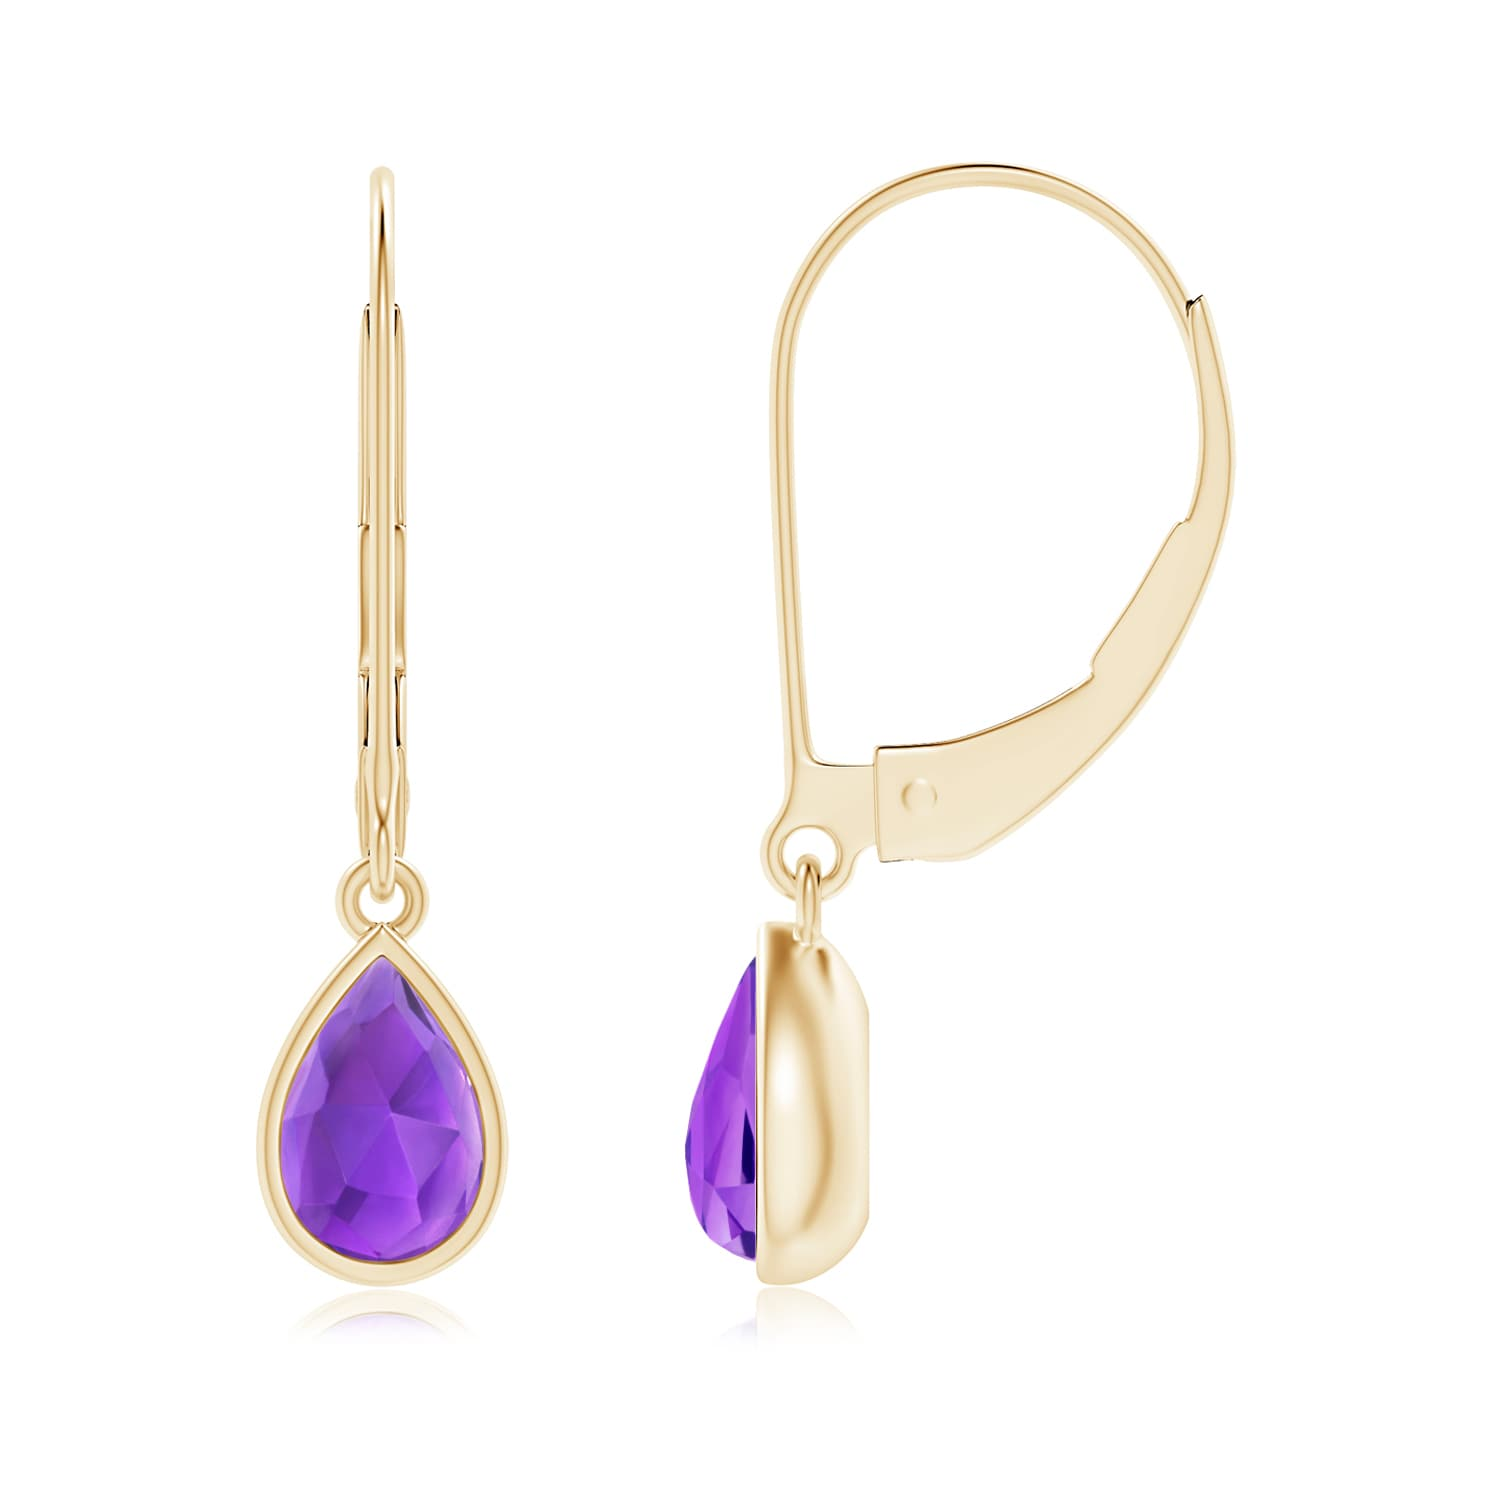 Angara Pear Shaped Amethyst Leverback Earrings in Rose Gold 317coISA